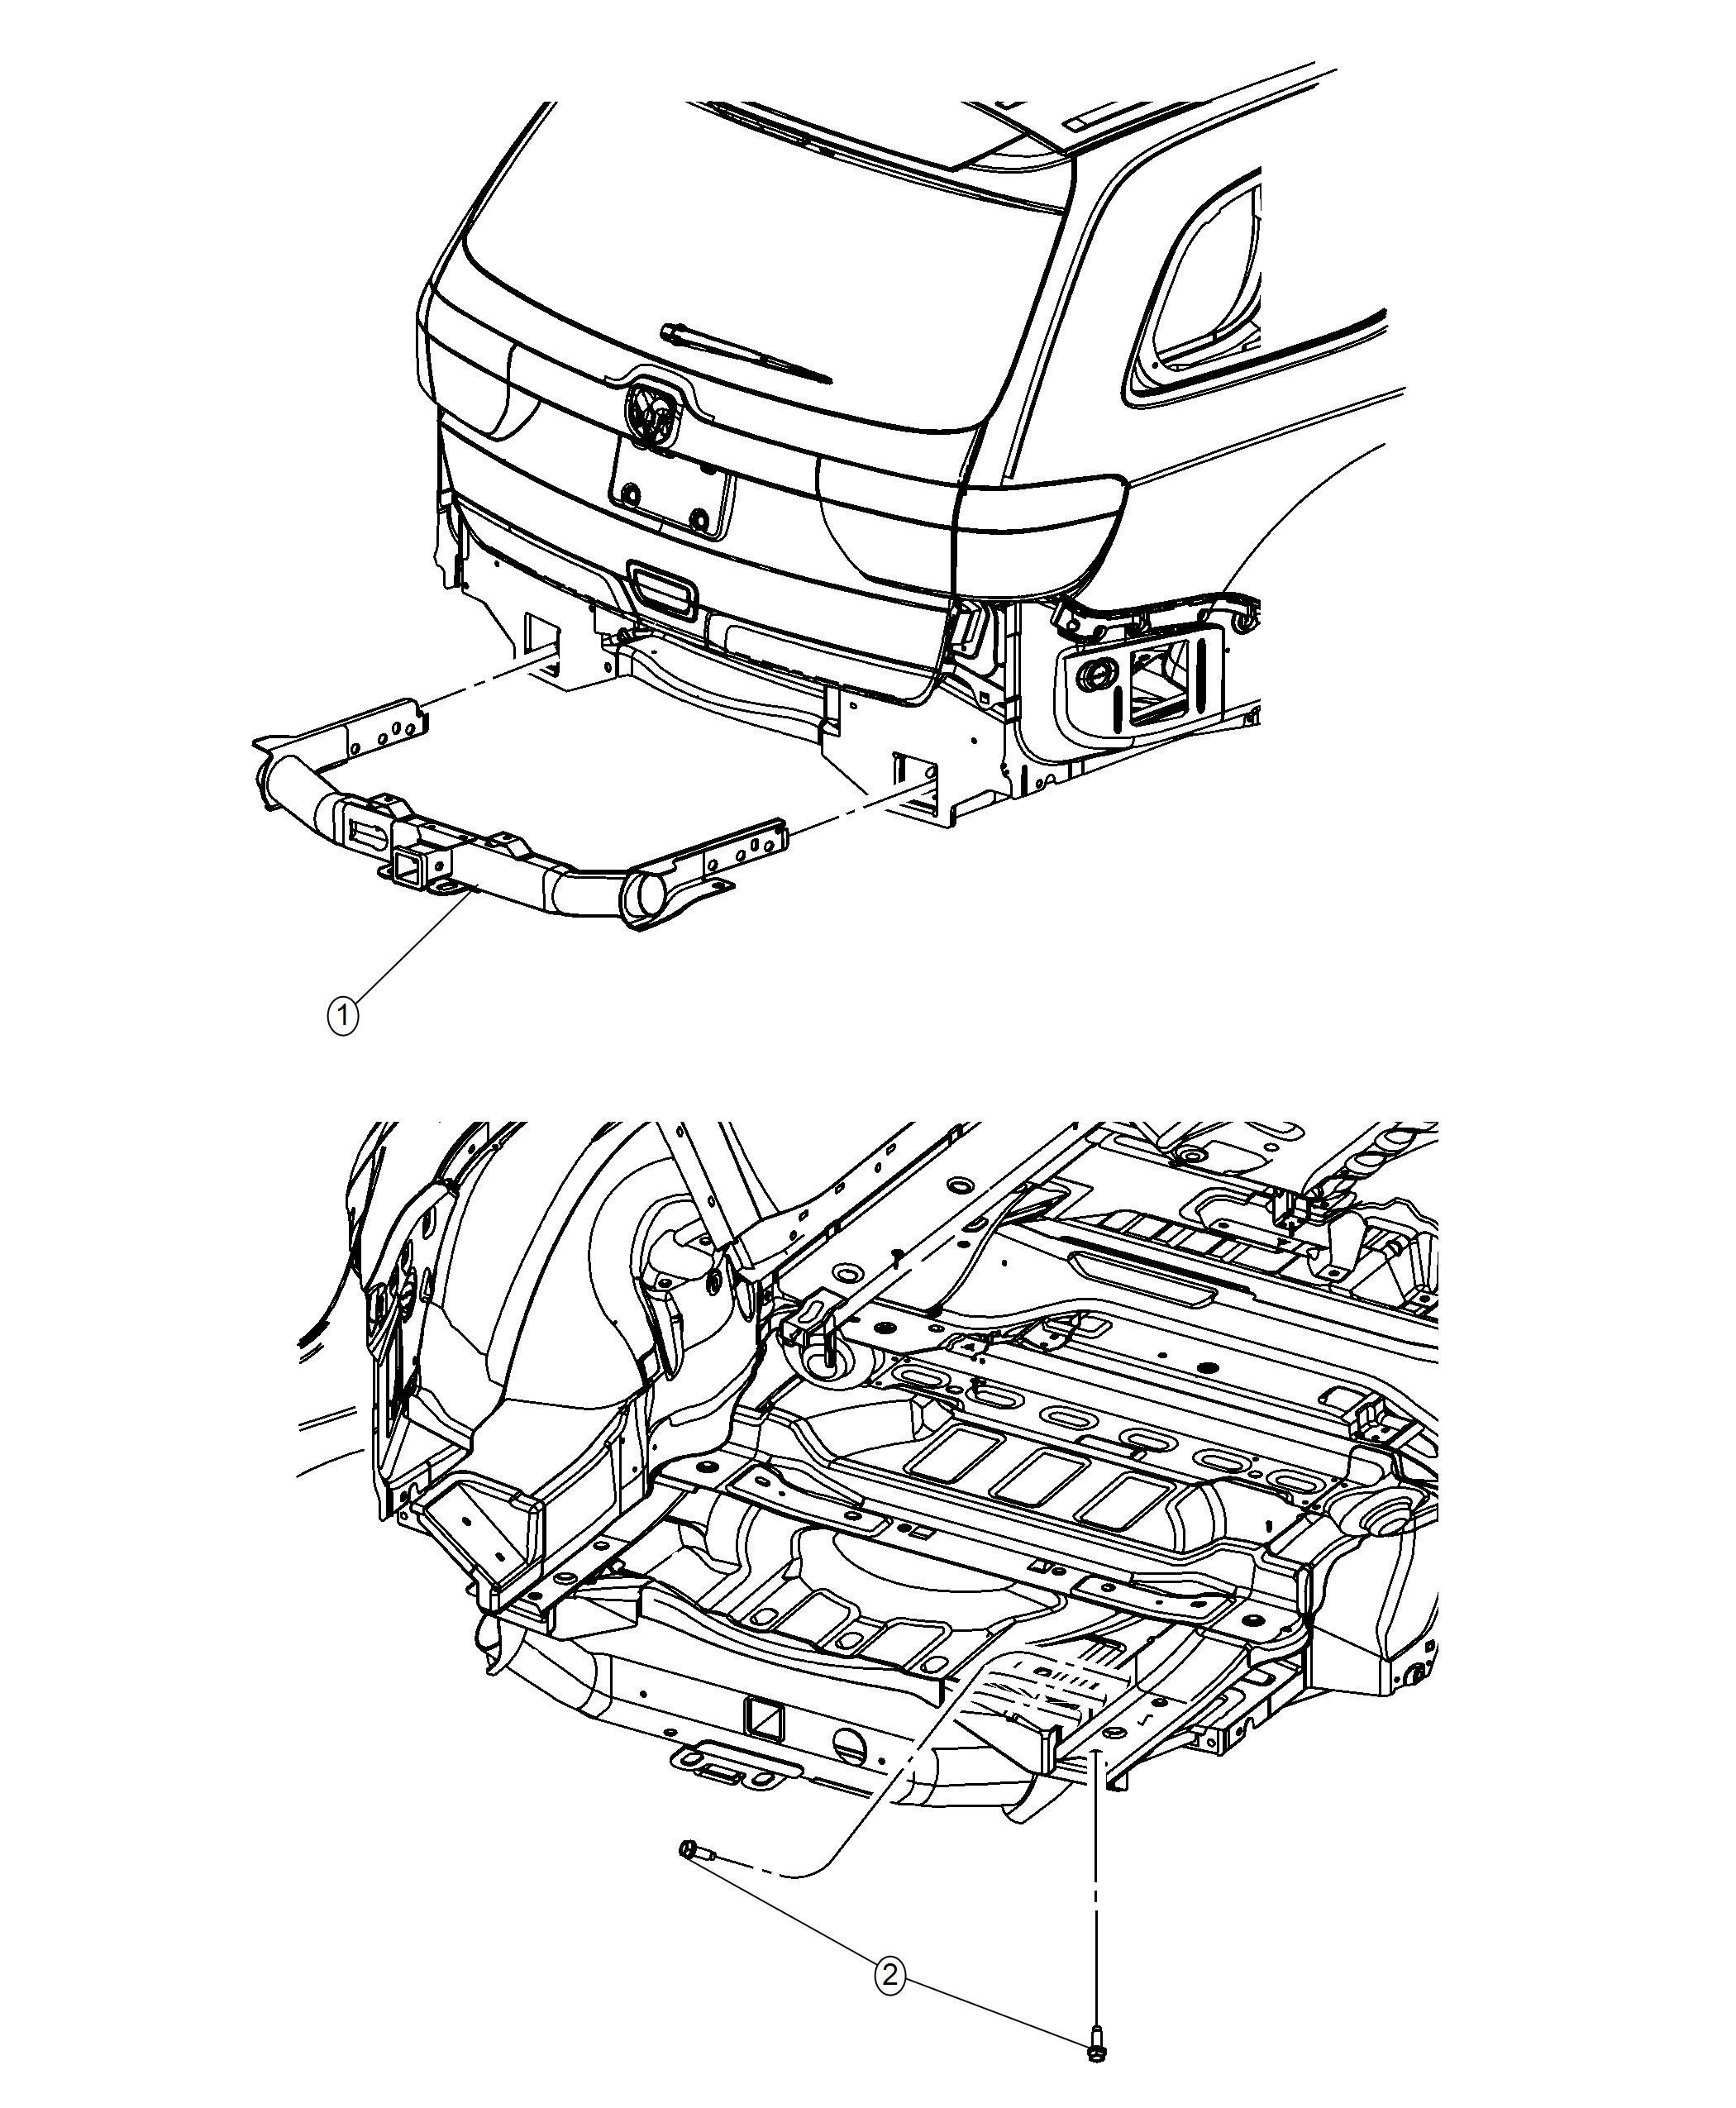 [DIAGRAM] Jeep Cherokee Trailer Tow Wiring Kit 7 Way Round